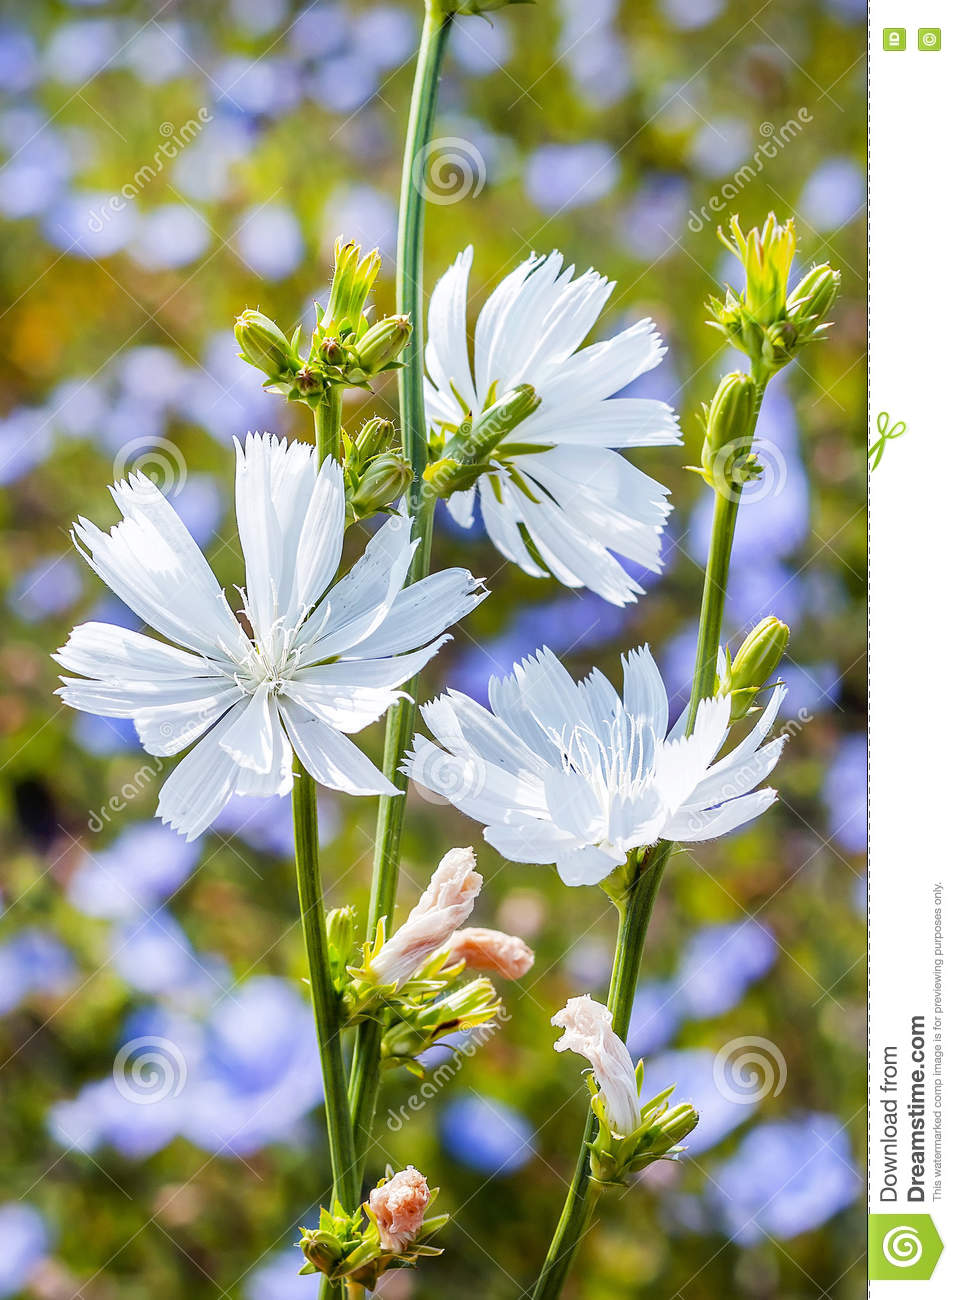 Chicory Common Cichorium The Plant With Unusual White Flowers